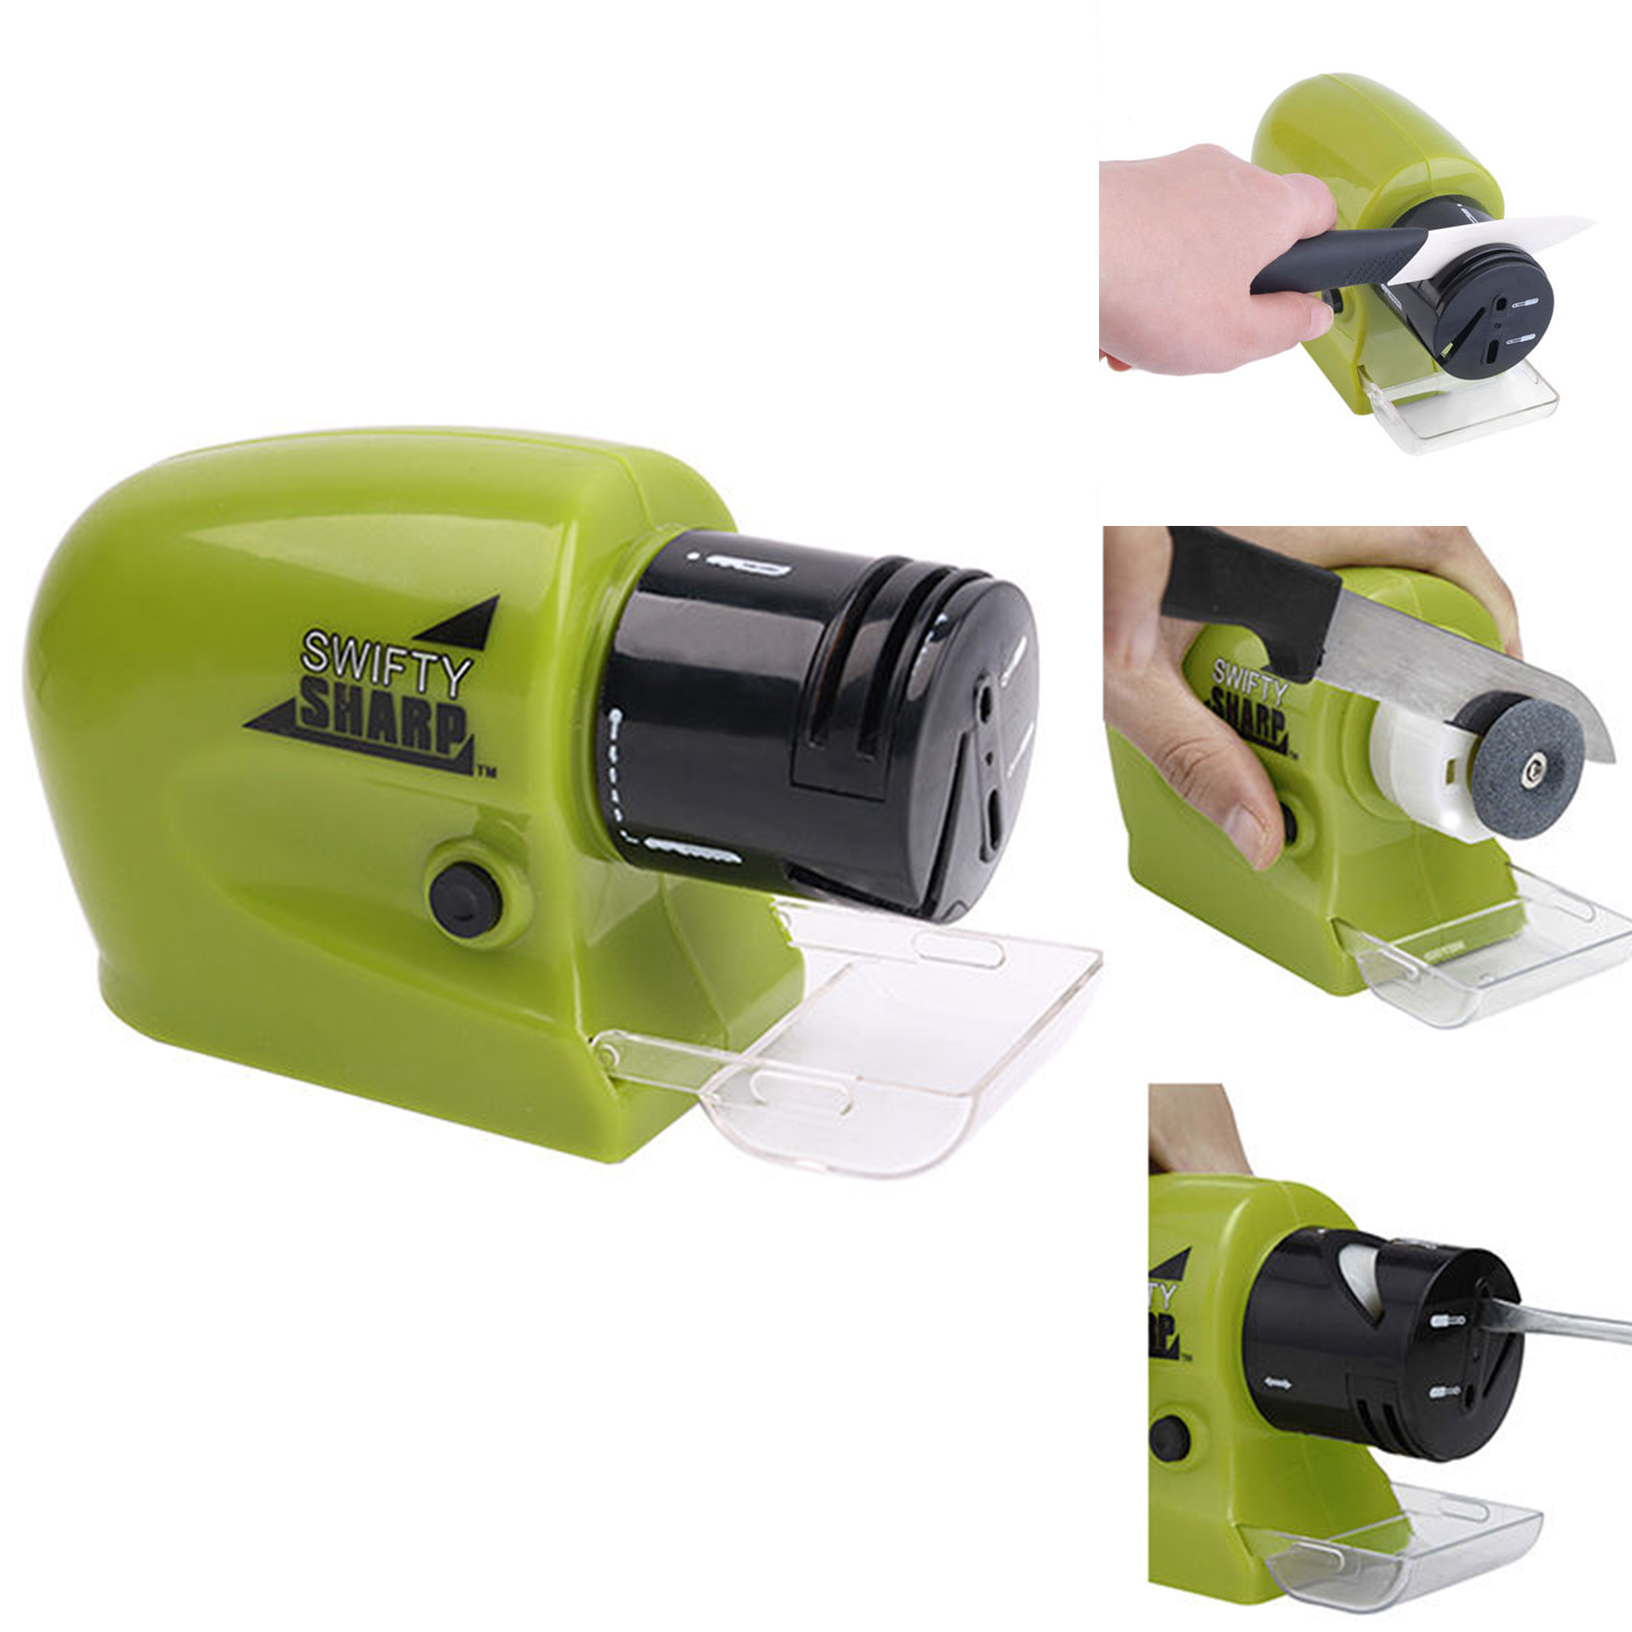 Professional Electric knife sharpener kitchen Scissors Blades Screwdrivers diamond sharpening stones system Household Sharpener(China (Mainland))